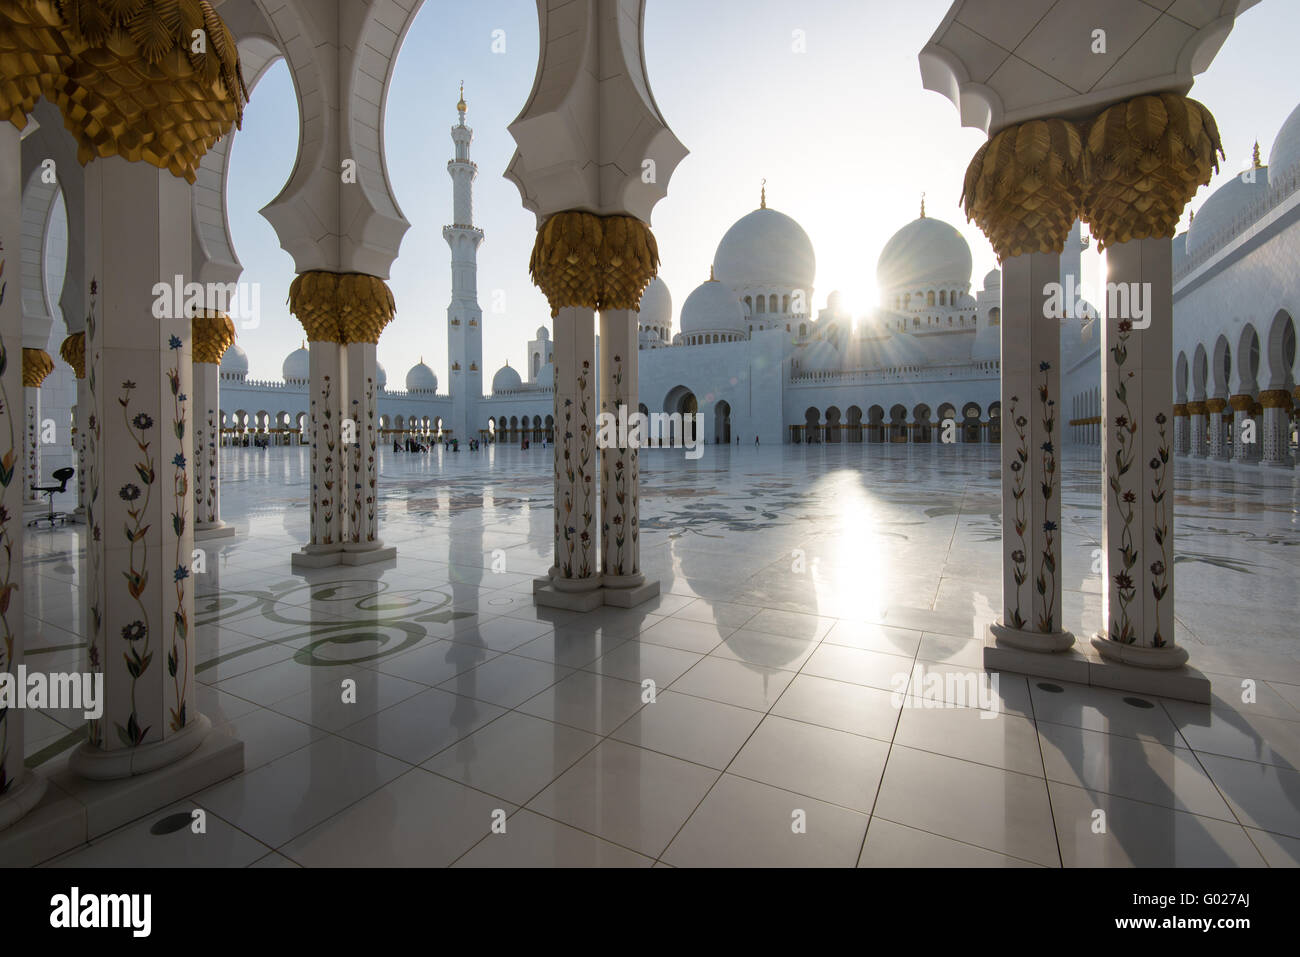 Abu Dhabi, Sheikh Zayed Grand Mosque. - Stock Image